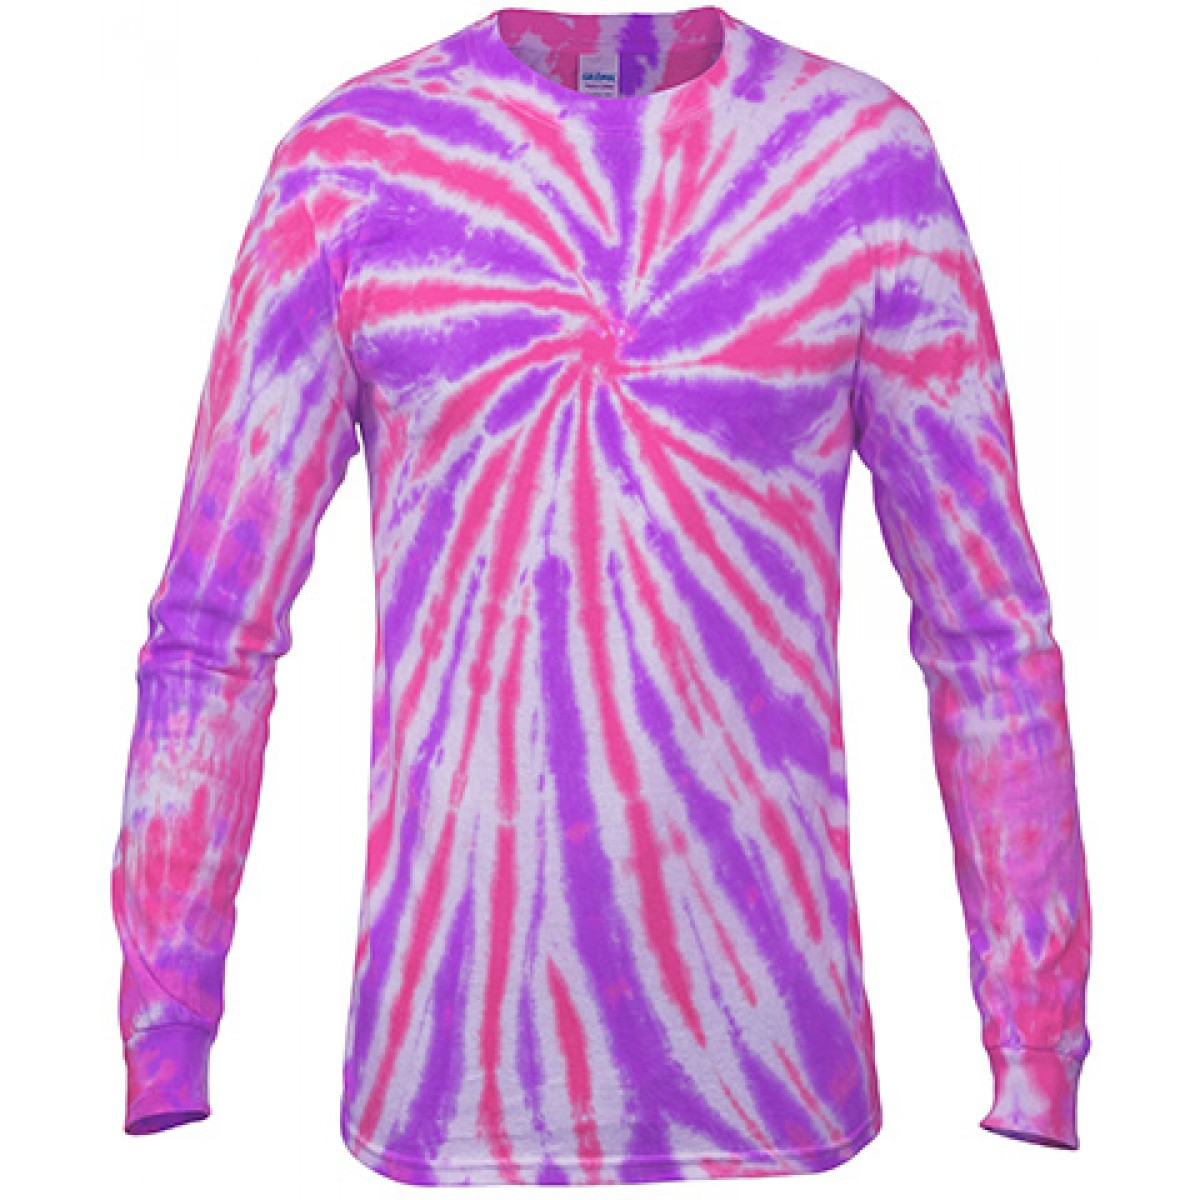 Multi Color Tie-Dye Long Sleeve Shirt -Purple-YL